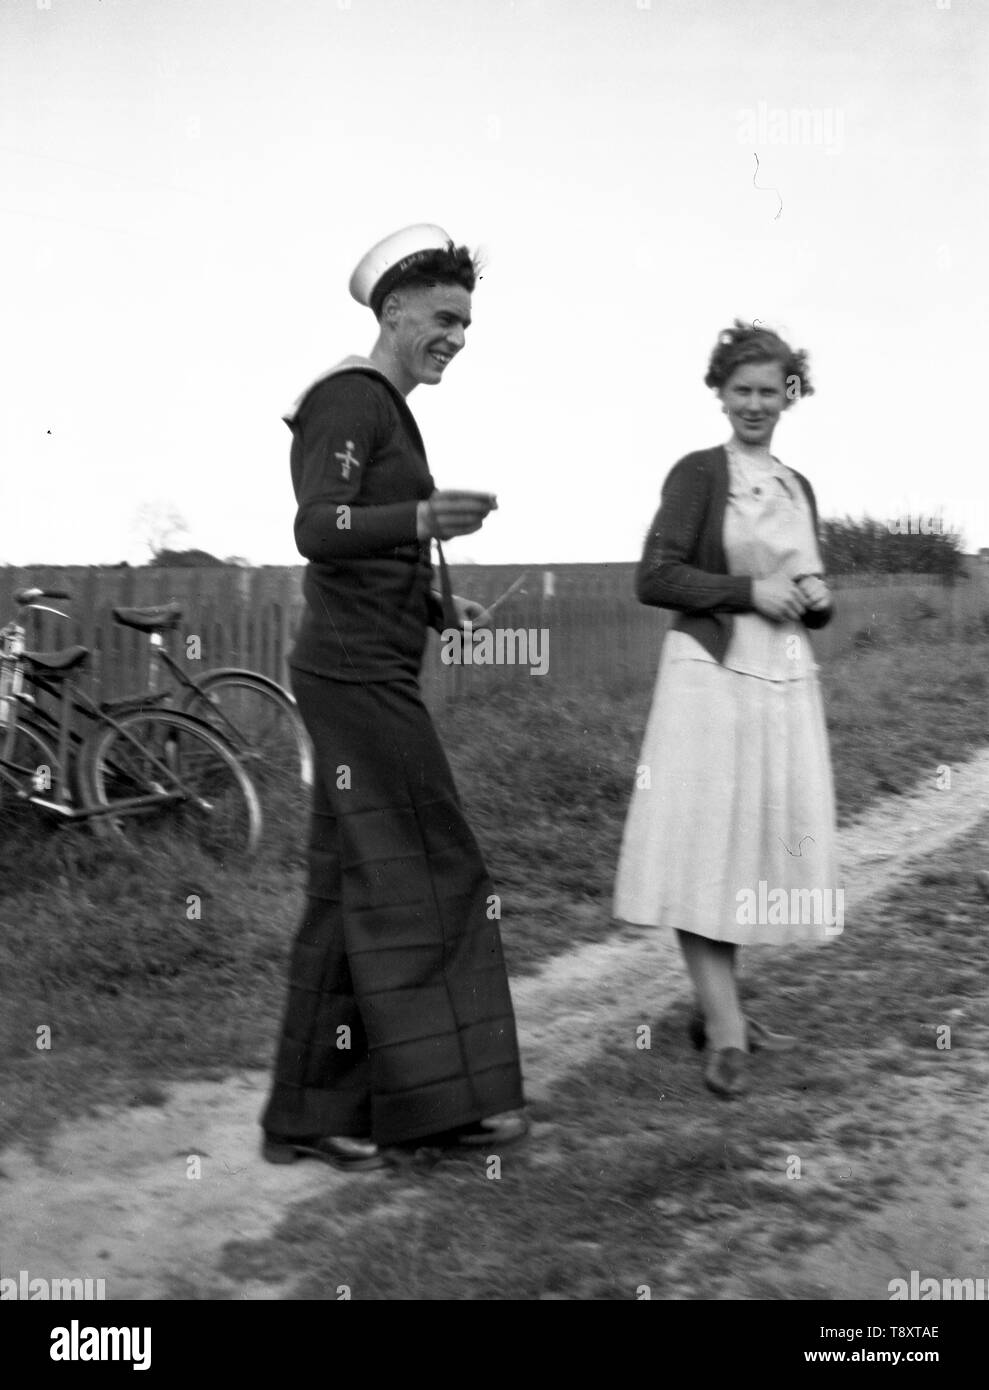 A candid image of a British Sailor in uniform on leave with a woman. Note the bell bottom trousers. c1930 Photo by Tony Henshaw - Stock Image